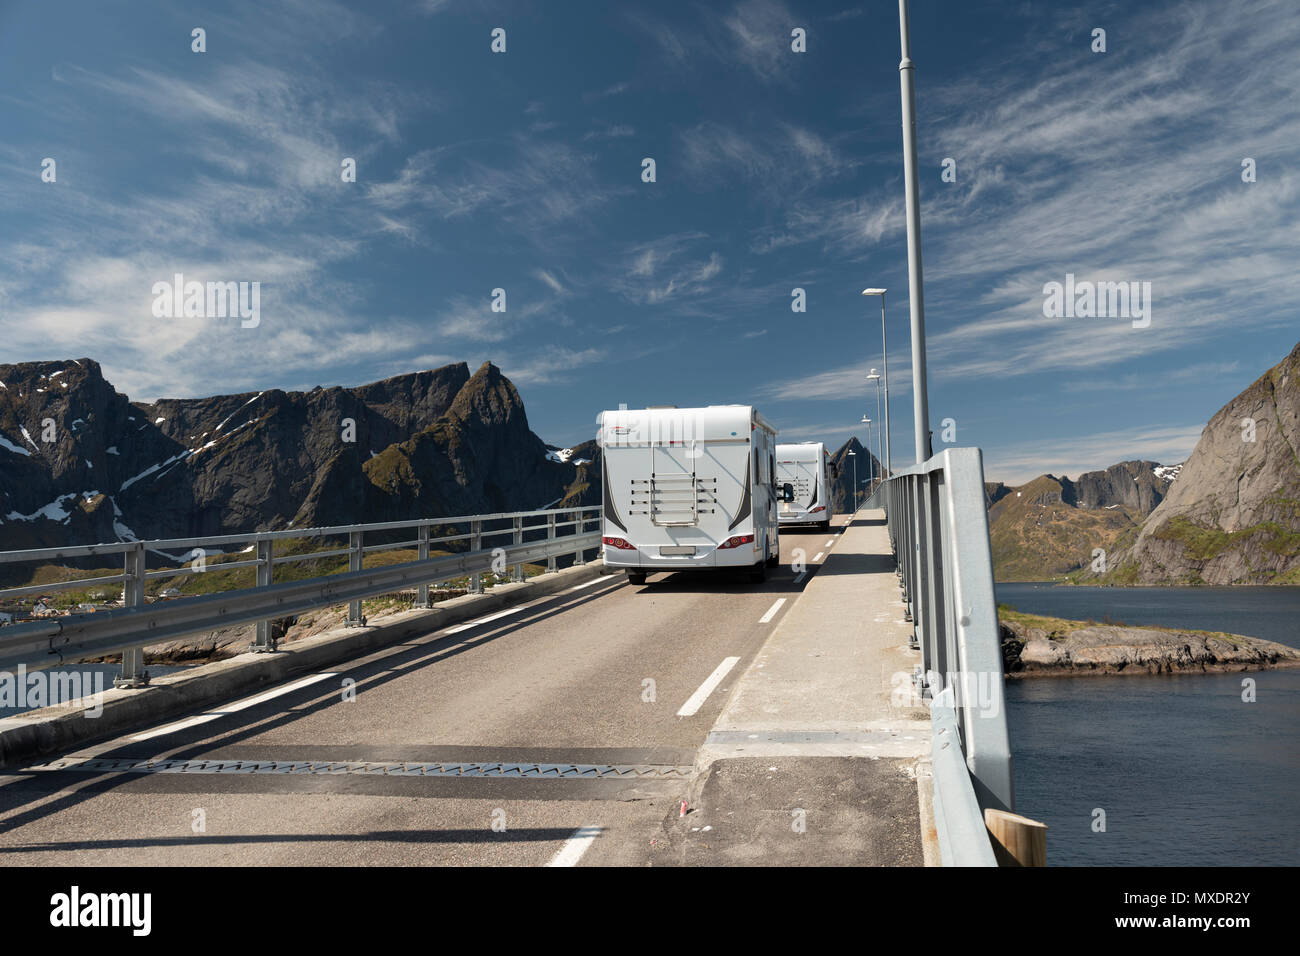 Camper vans driving over a bridge at Hamnoy, Lofoten Islands, Norway. Stock Photo